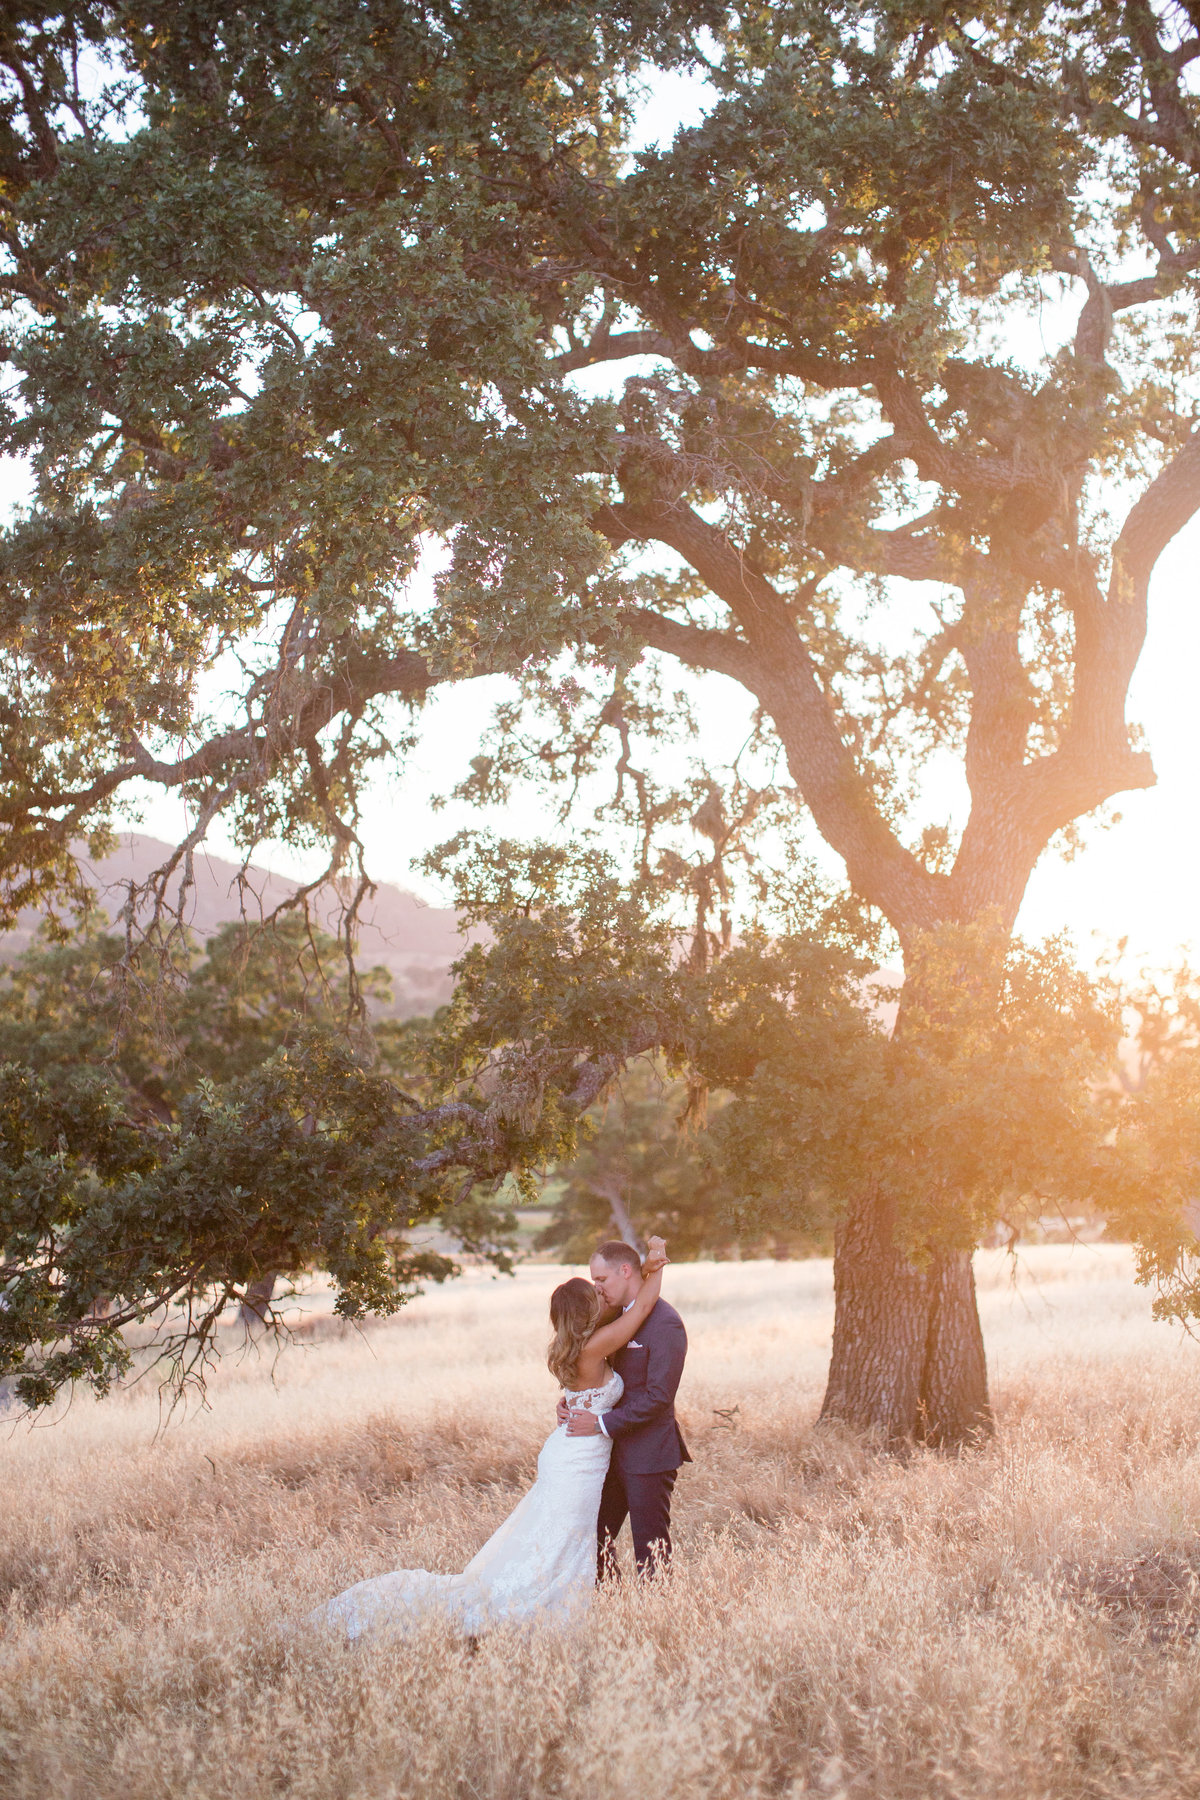 Jenna & Andrew's Oyster Ridge Wedding | Paso Robles Wedding Photographer | Katie Schoepflin Photography580